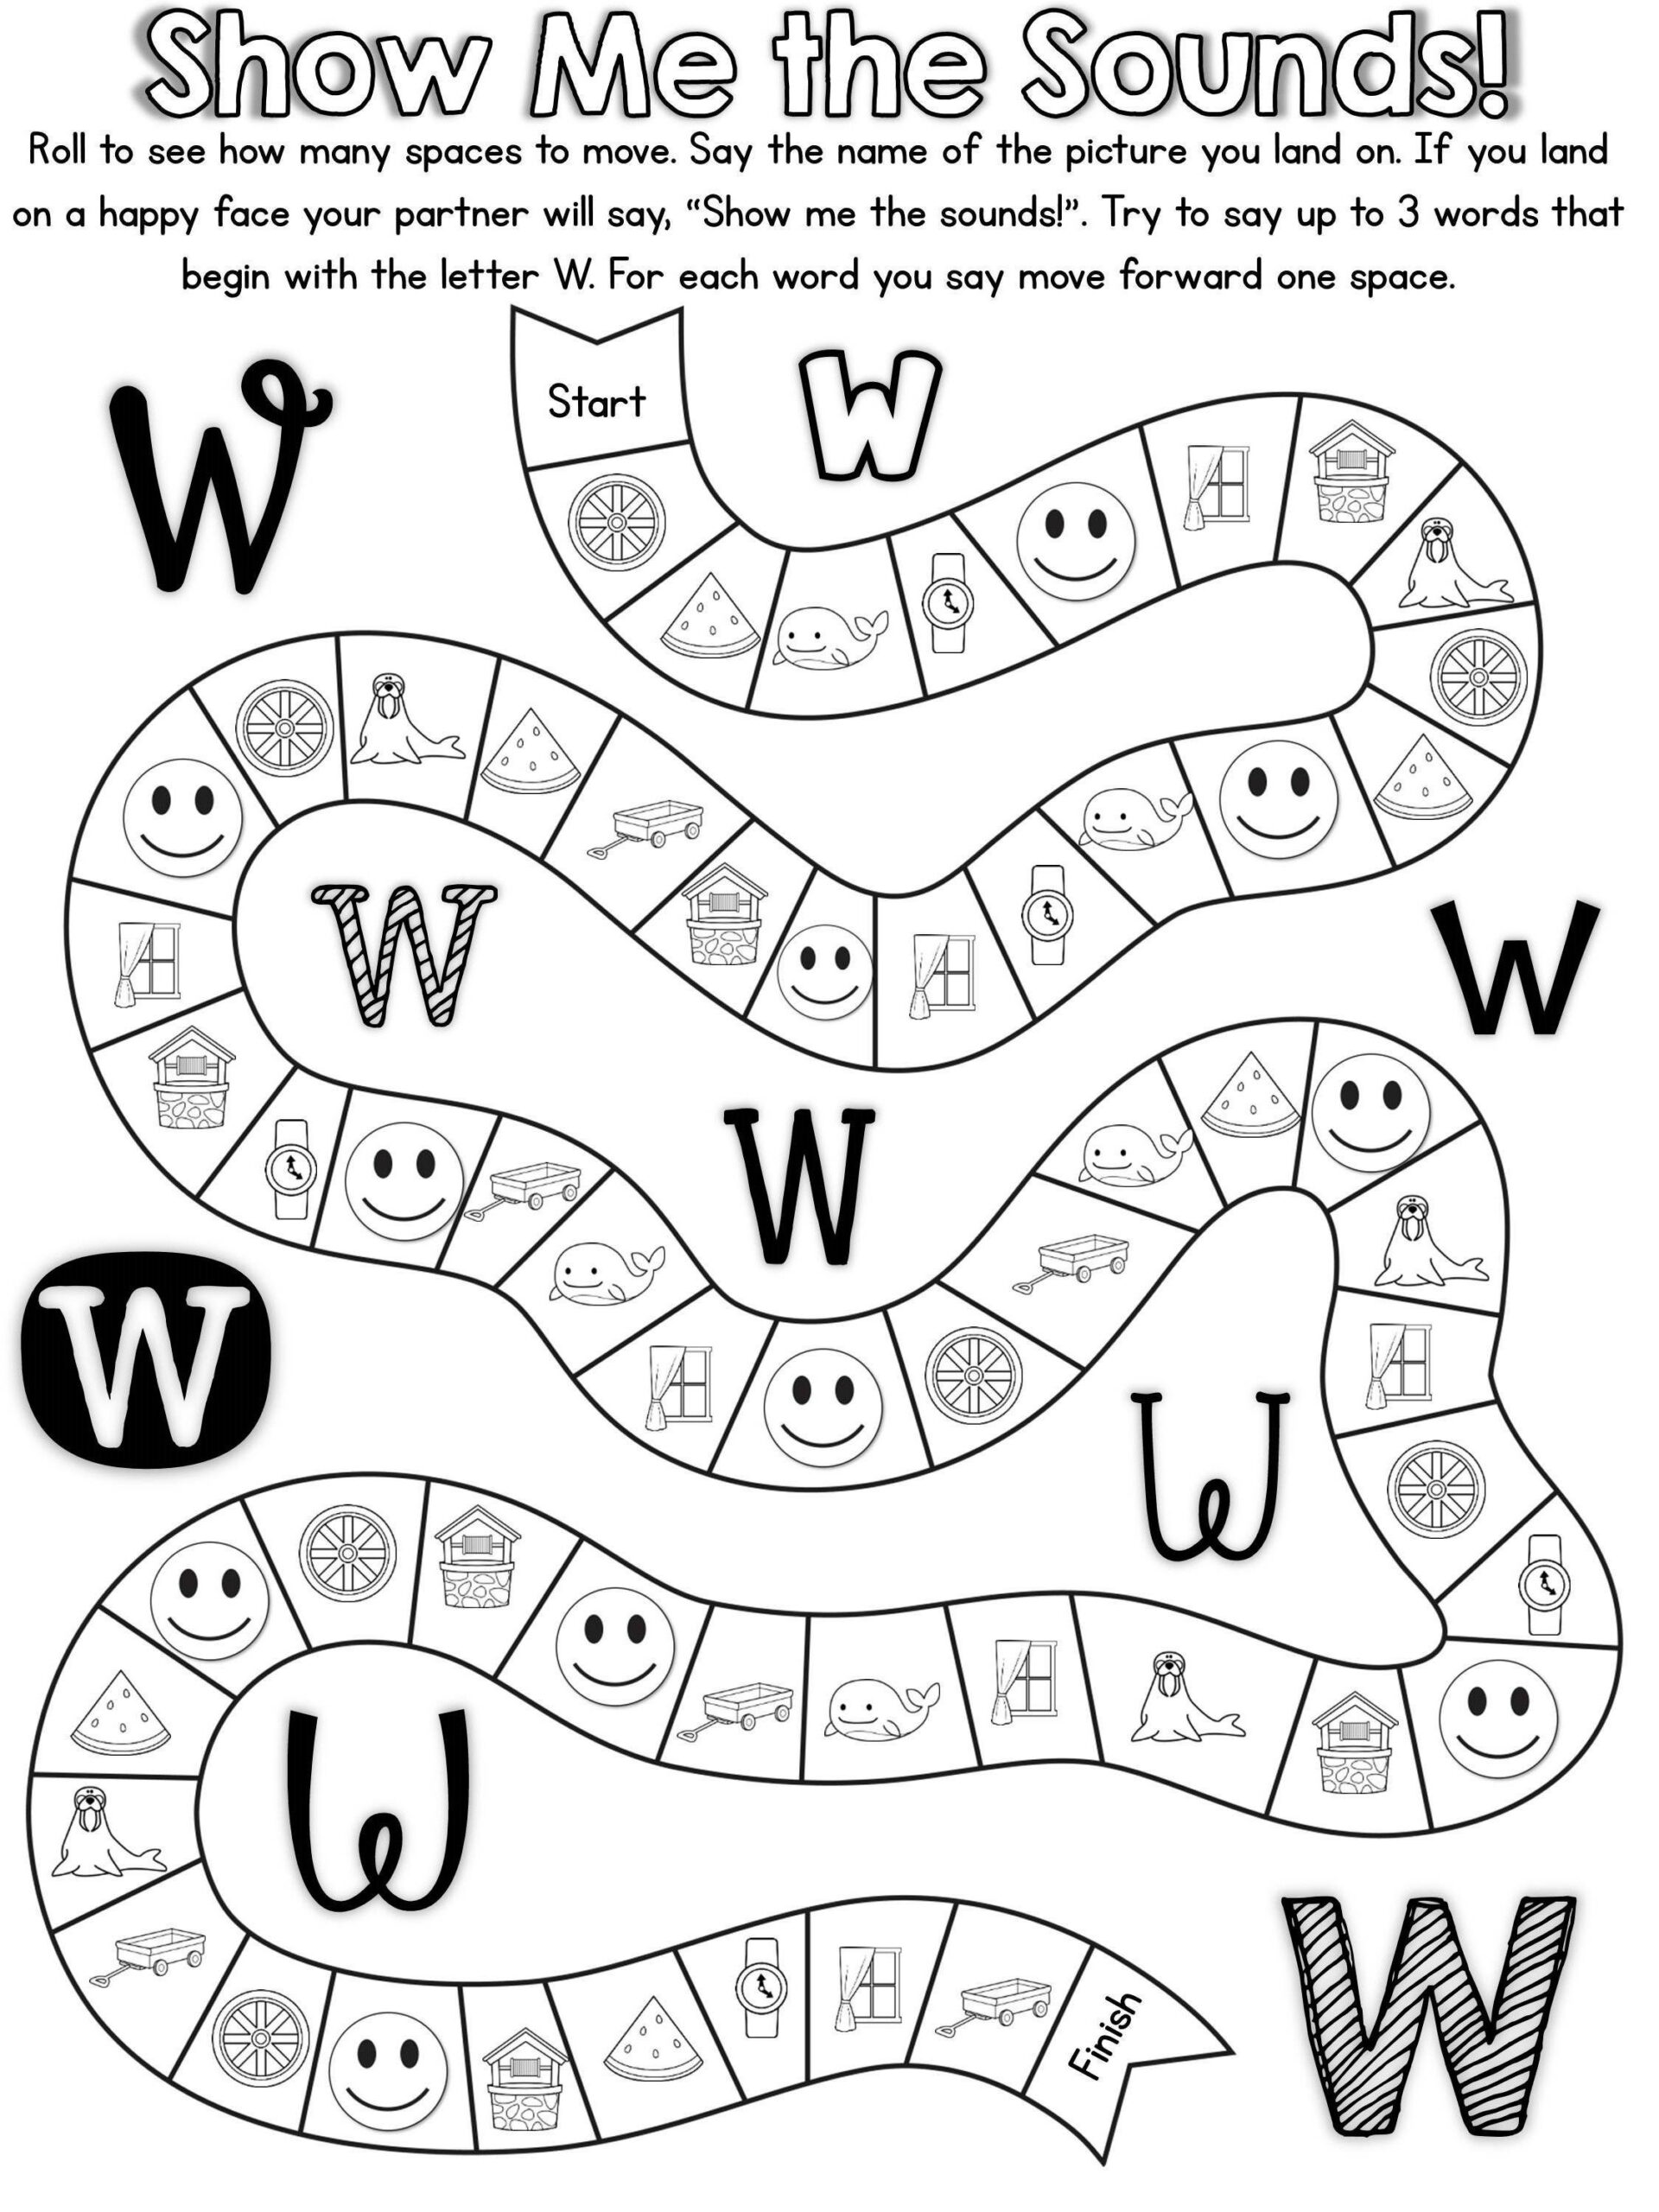 20 Ready To Print, No Prep Games To Practice The Letter W in Letter W Worksheets For Toddlers